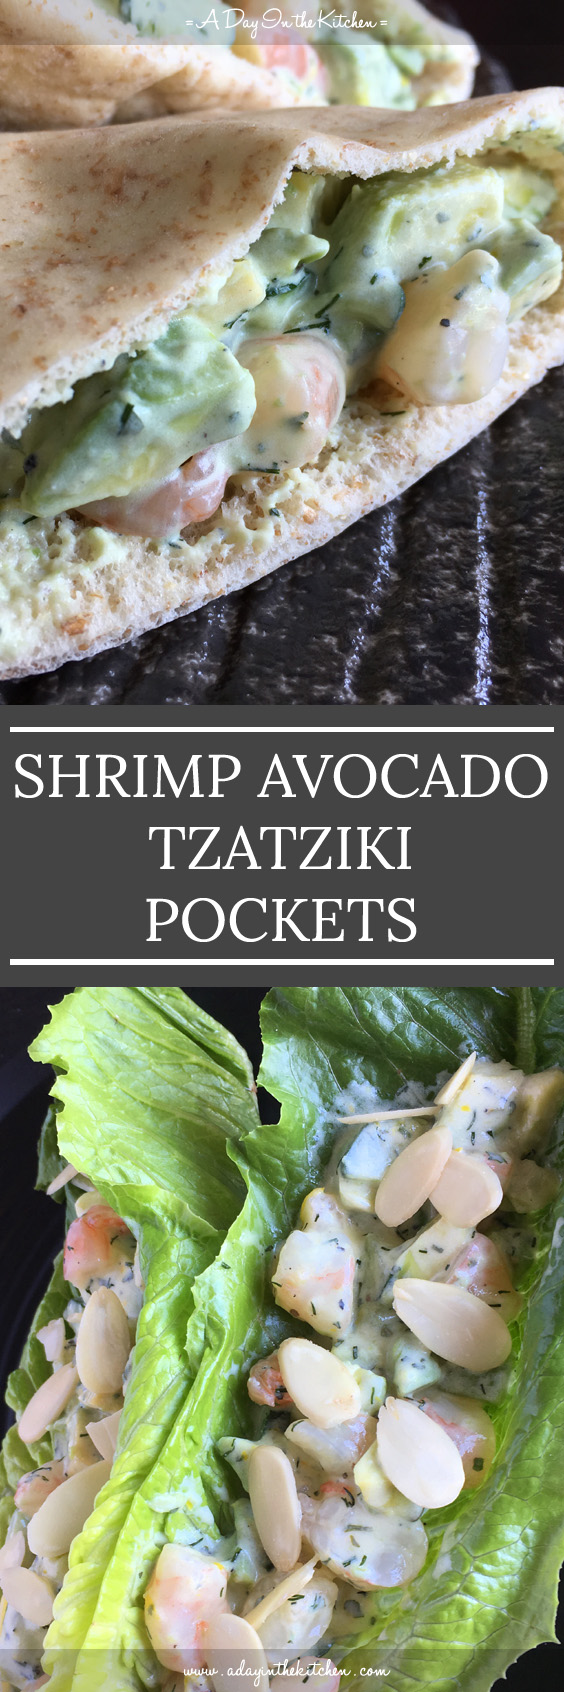 No matter what shape pocket you use, whether it's a pita, lettuce, or a cracker, Shrimp Avocado Tzatziki Pockets are full of texture and YUM. #shrimp #avocado #tzatziki #pitapockets #lettucewraps #shrimpavocadotzatziki #shrimpavocado